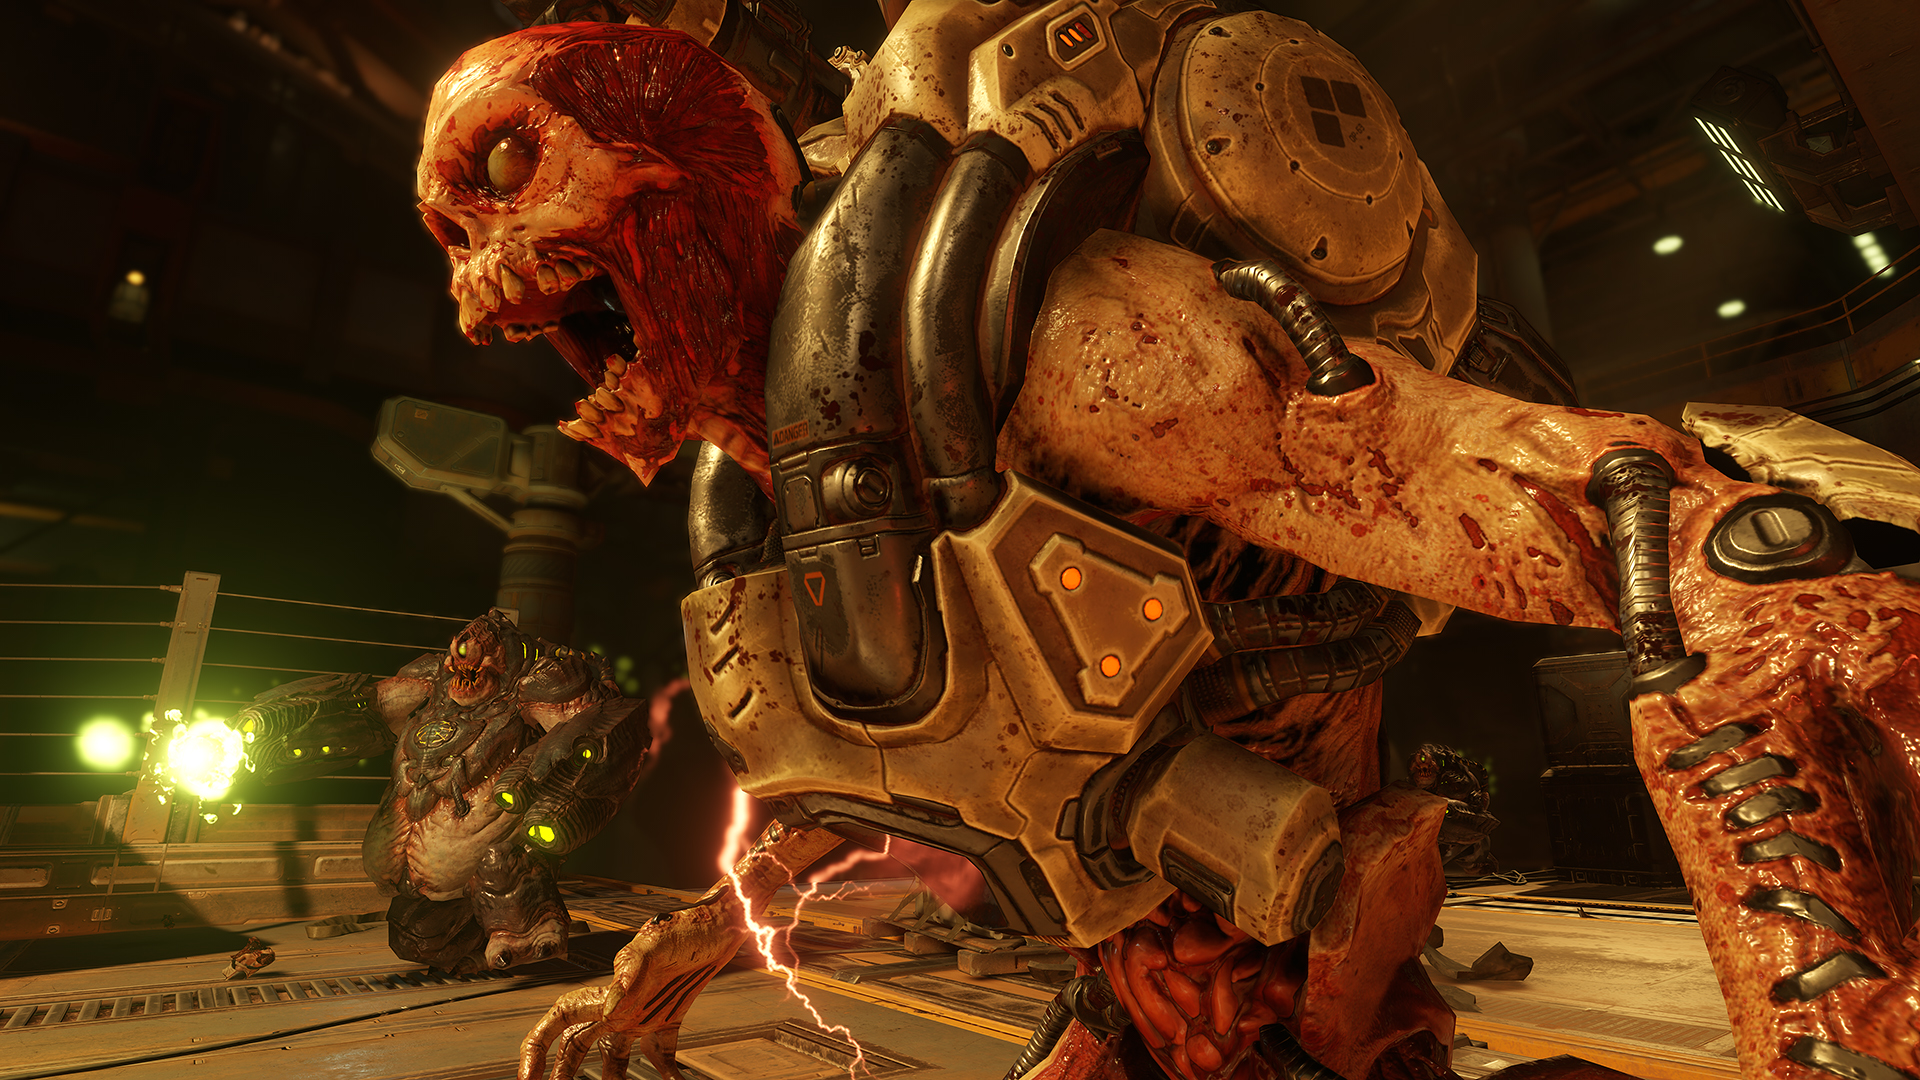 New Screenshots From DOOM - 2015-07-24 12:43:42